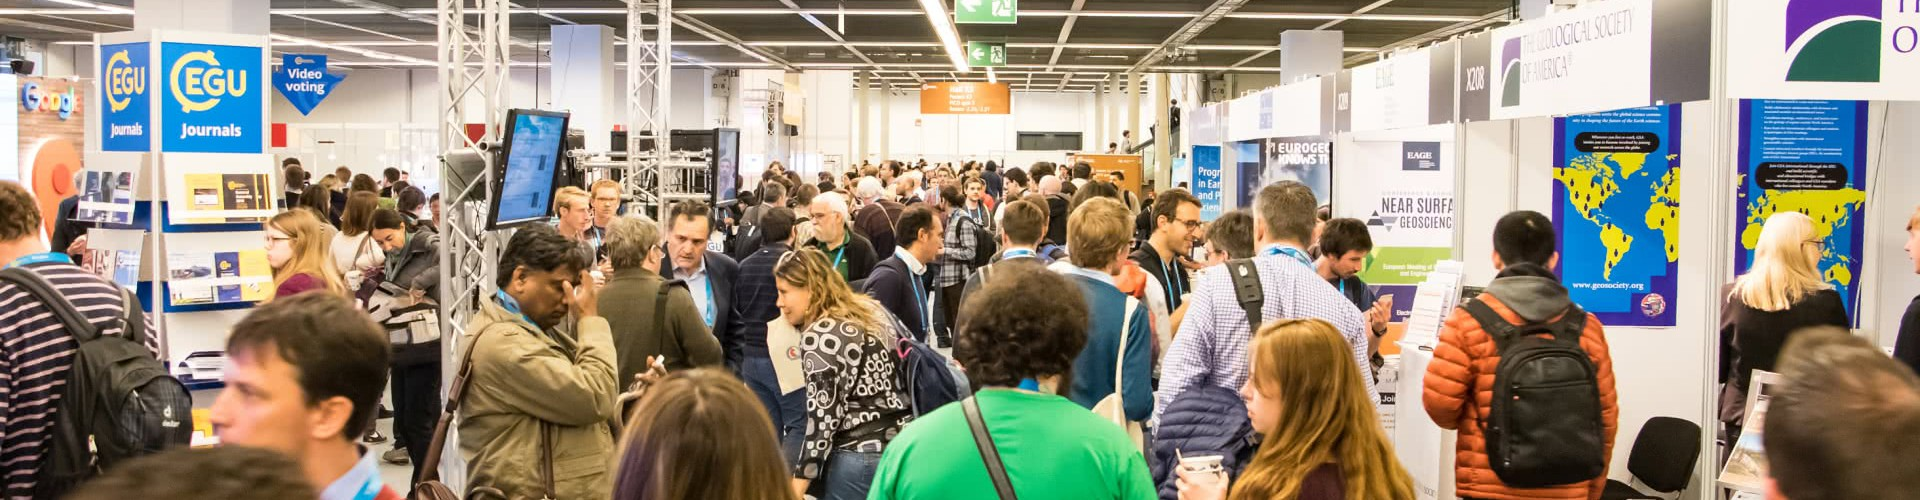 Crowds at the EGU 2017 General Assembly (Credit: EGU/Foto Pfluegl)